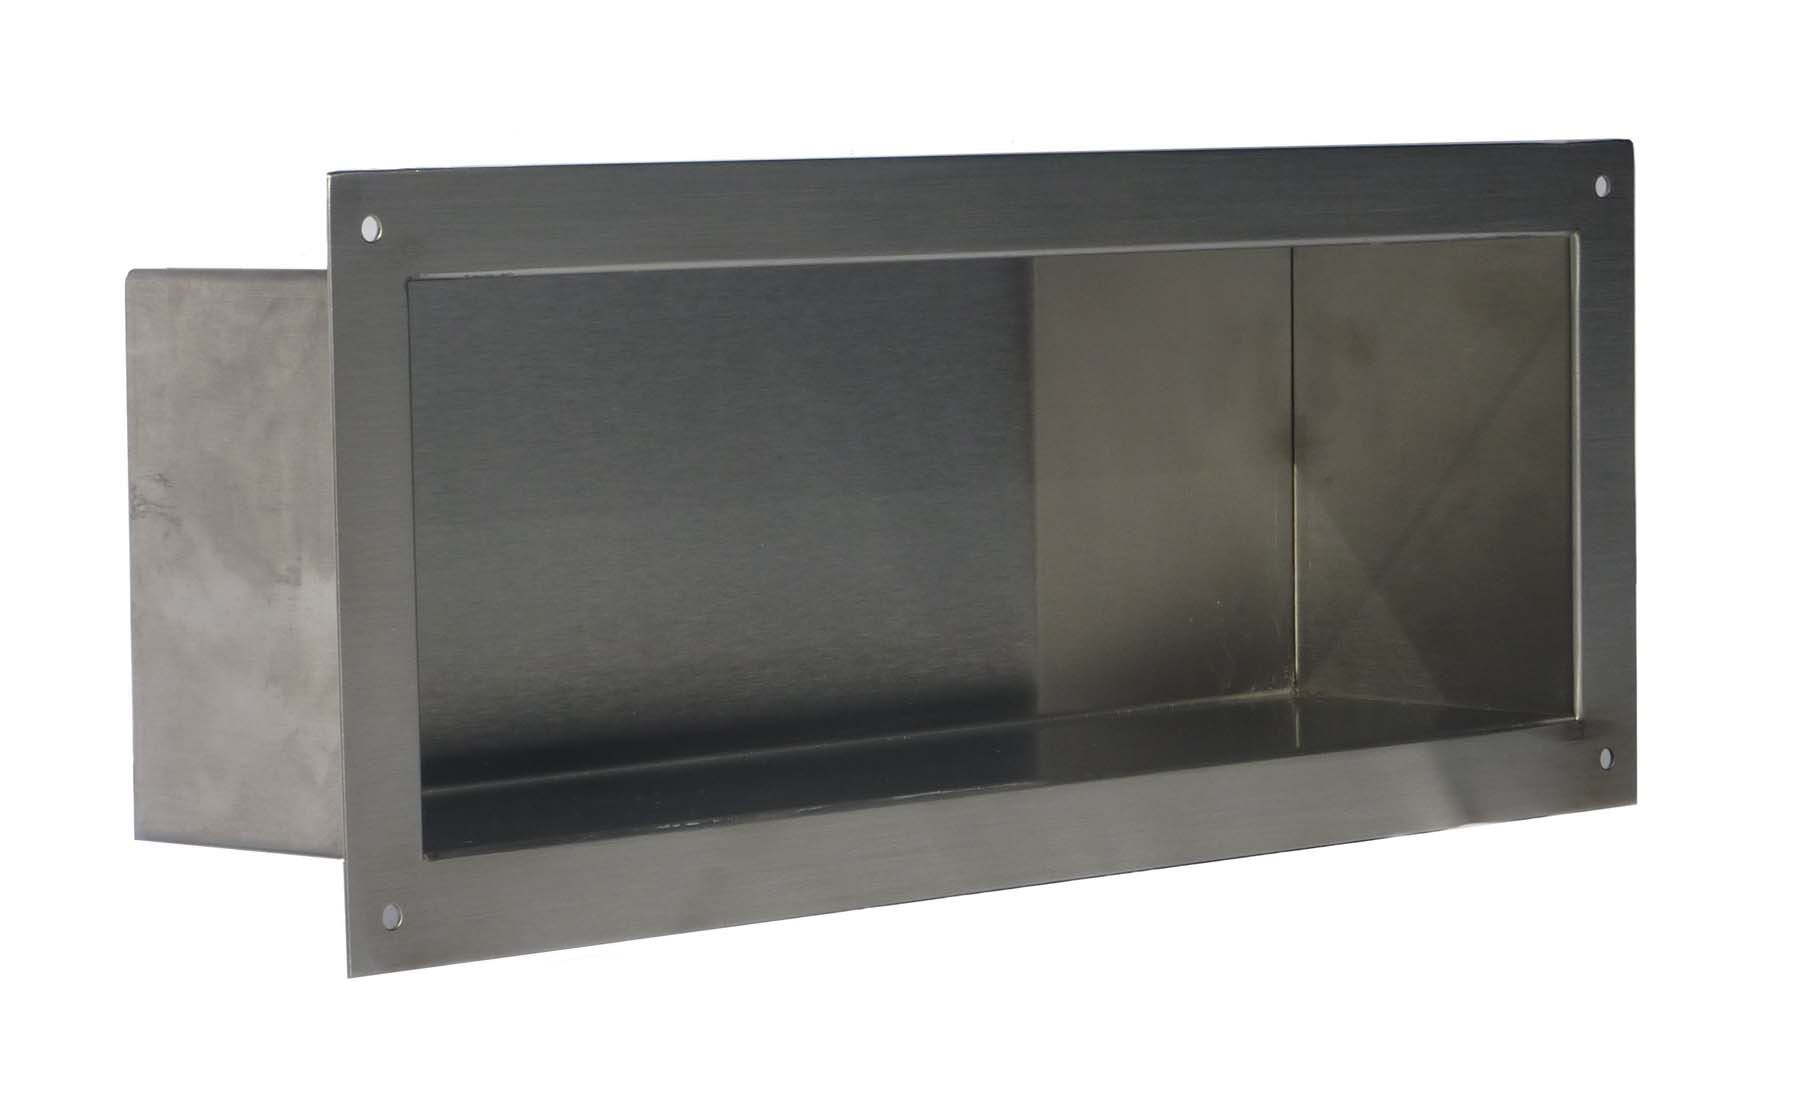 SR recessed shelving 200.jpg